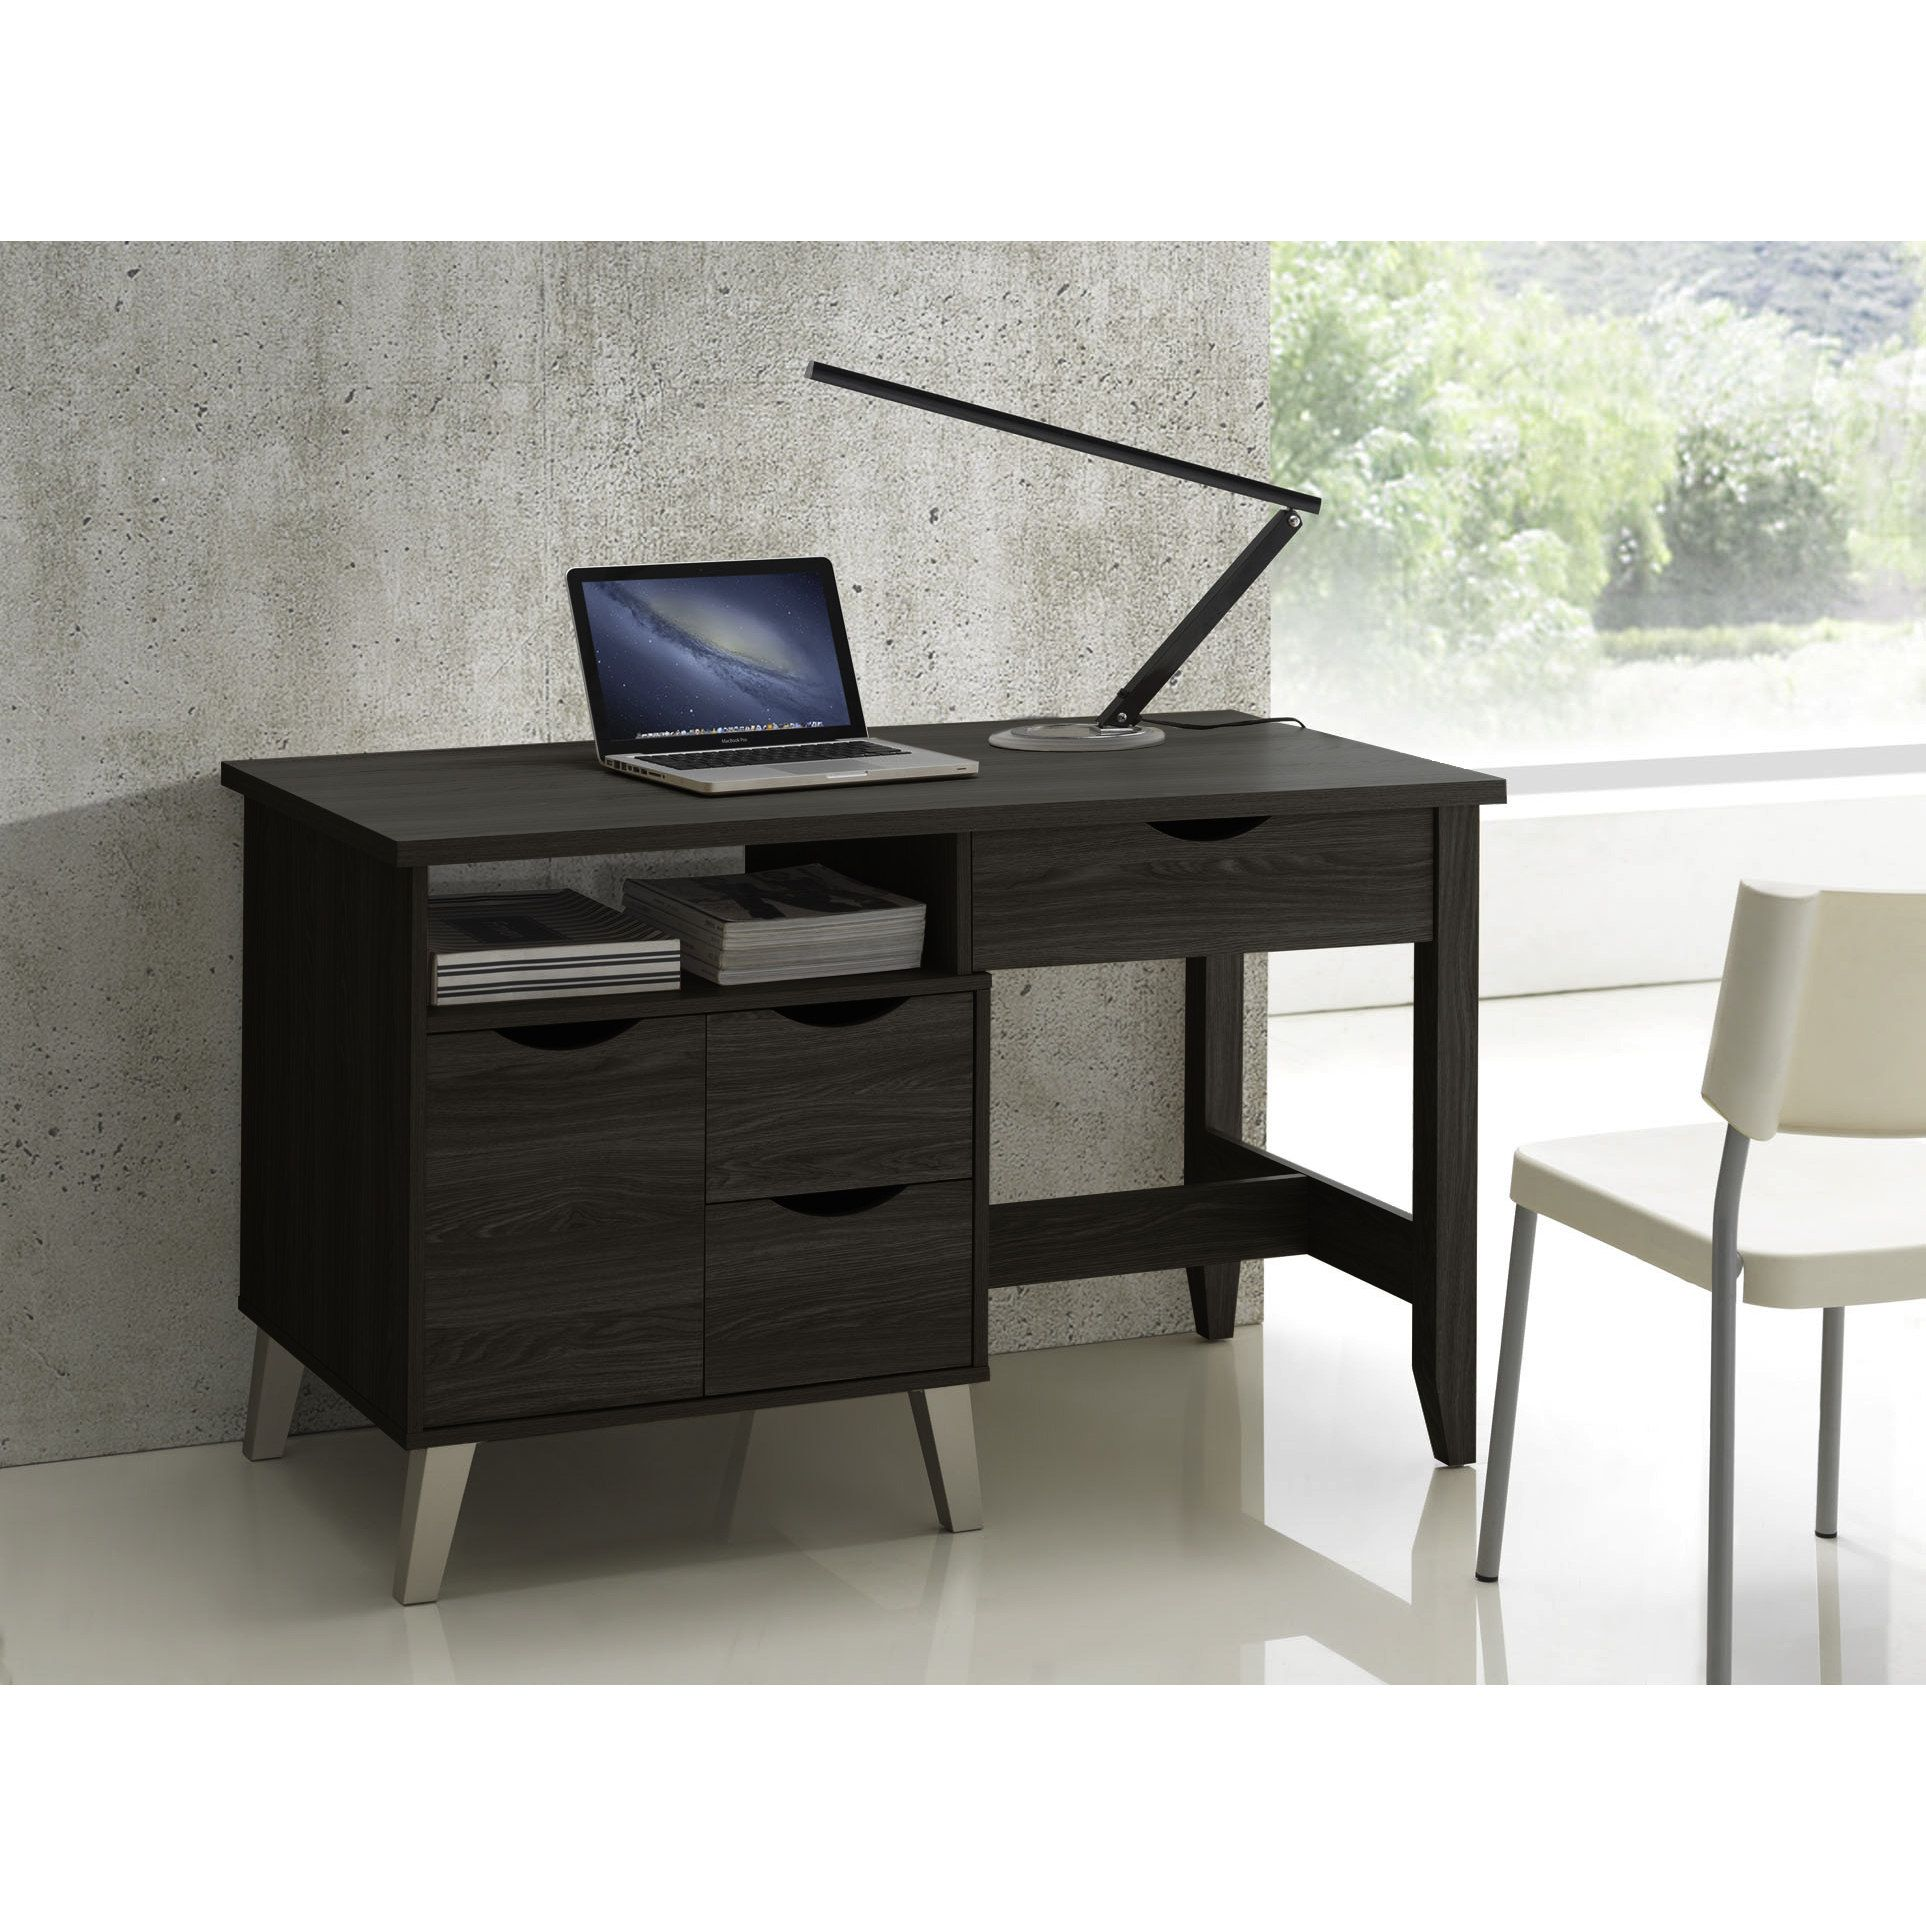 Baxton Studio Mckenzie Contemporary 3 Drawer Dark Brown Wood Study Desk